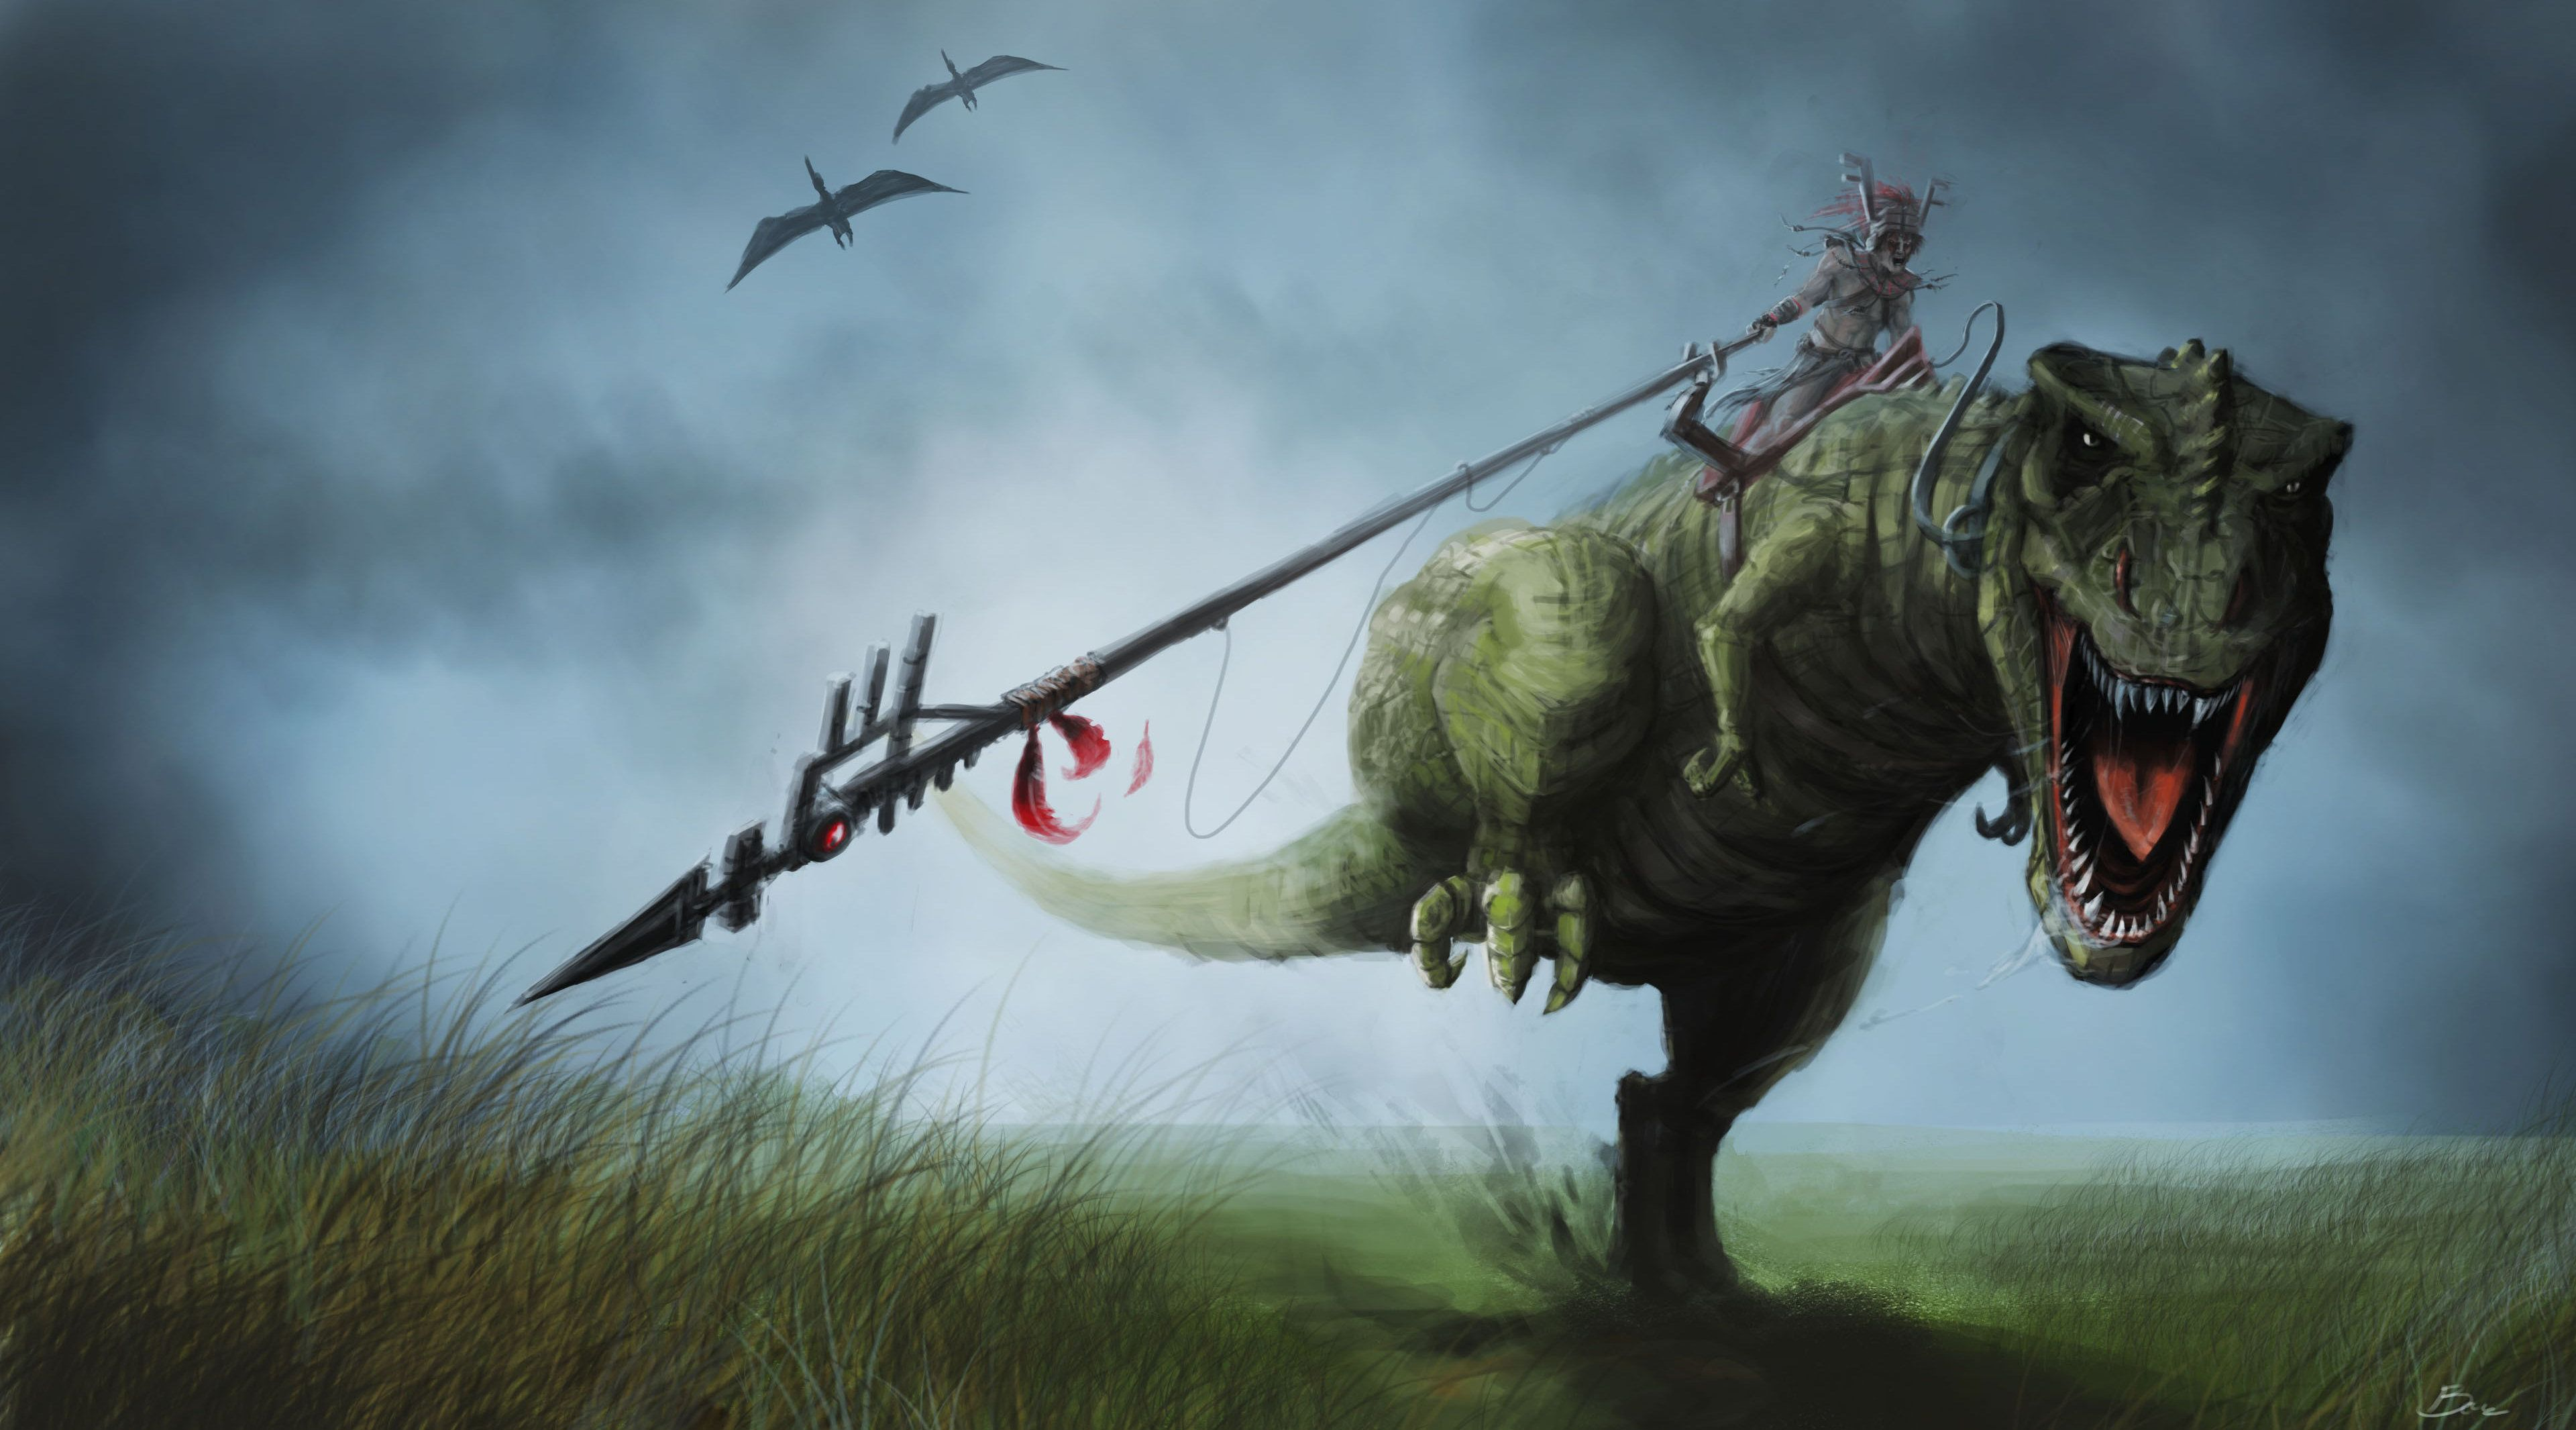 Dinosaur wallpaper dinosaur wallpapers pinterest for T rex location